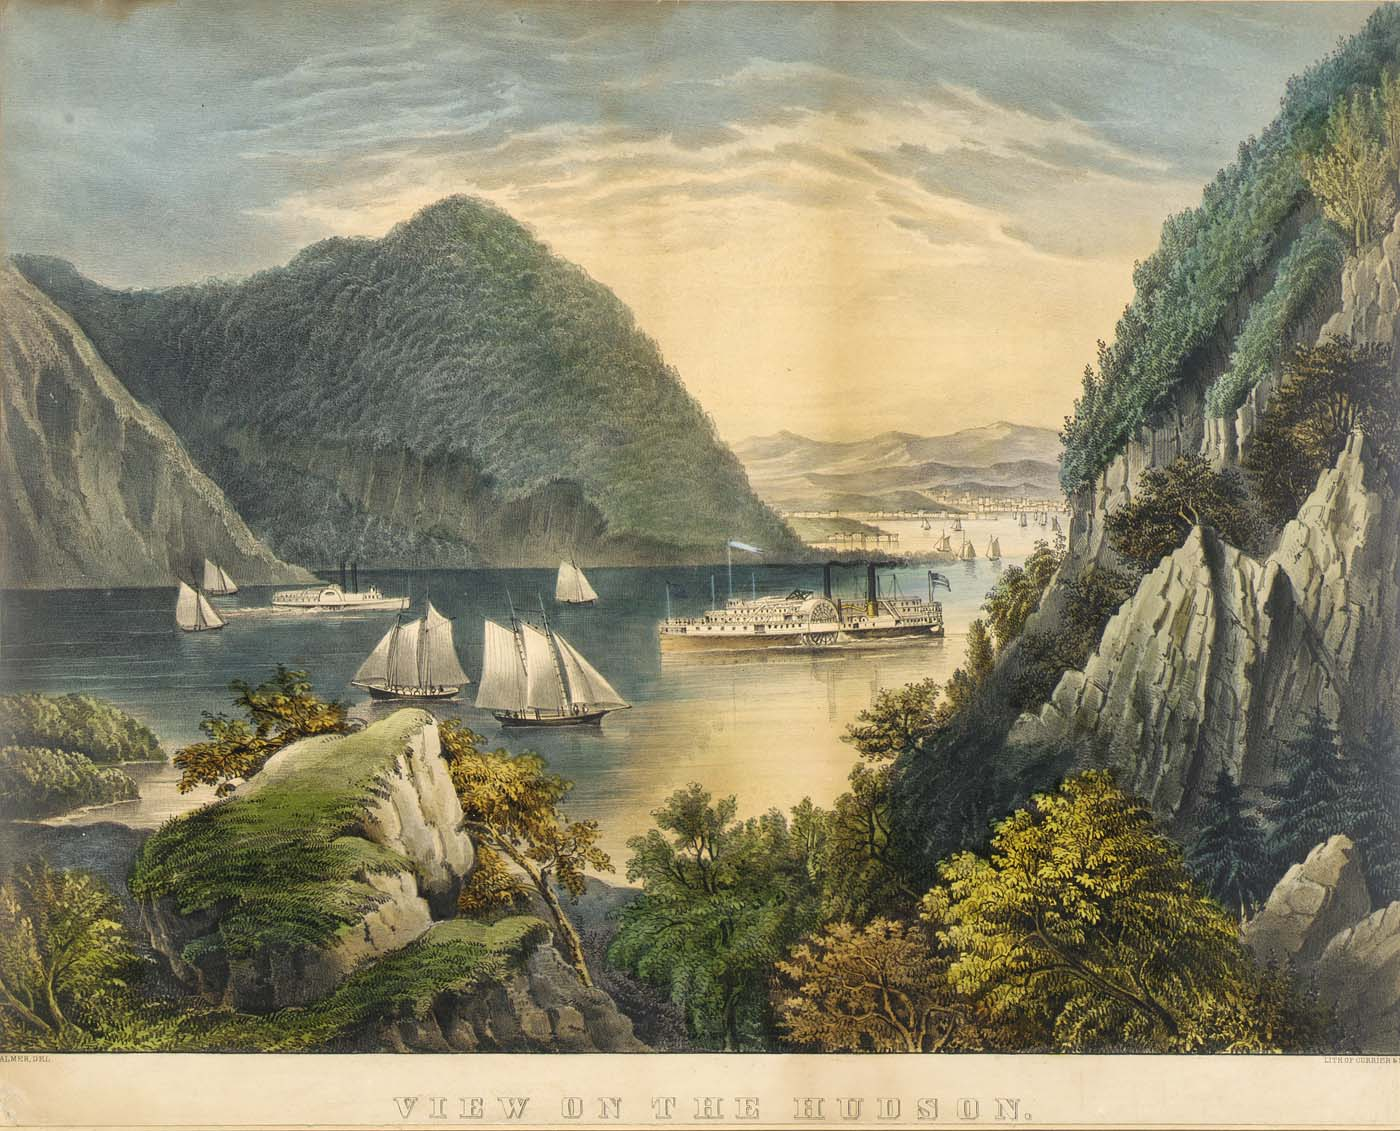 View of the Hudson, ca. 1865, Frances Flora Bond Palmer, color lithograph, Smithsonian American Art Museum